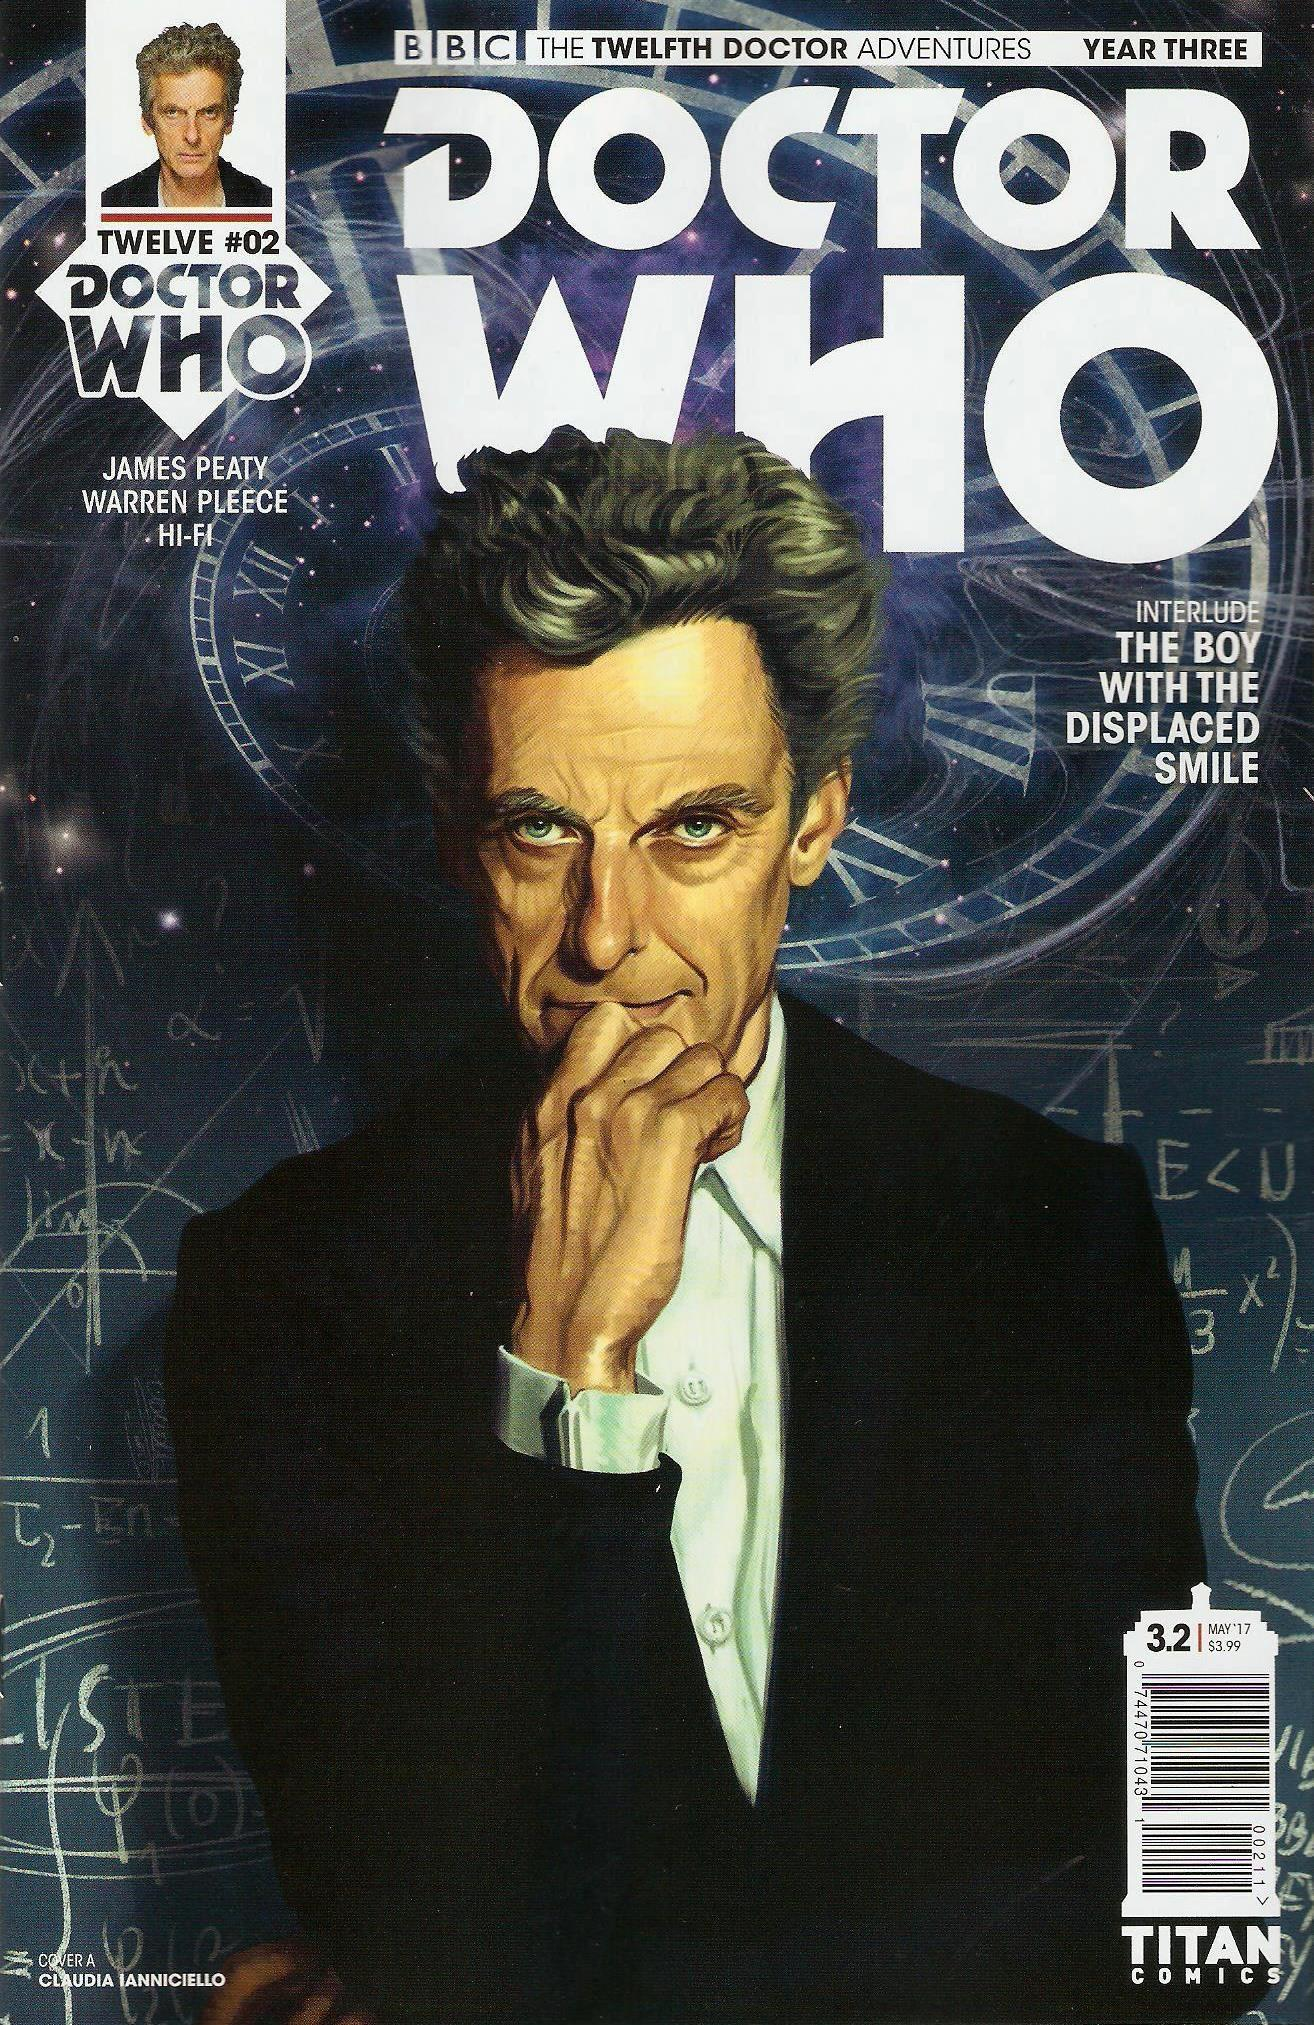 Twelfth doctor year 3 issue 2a